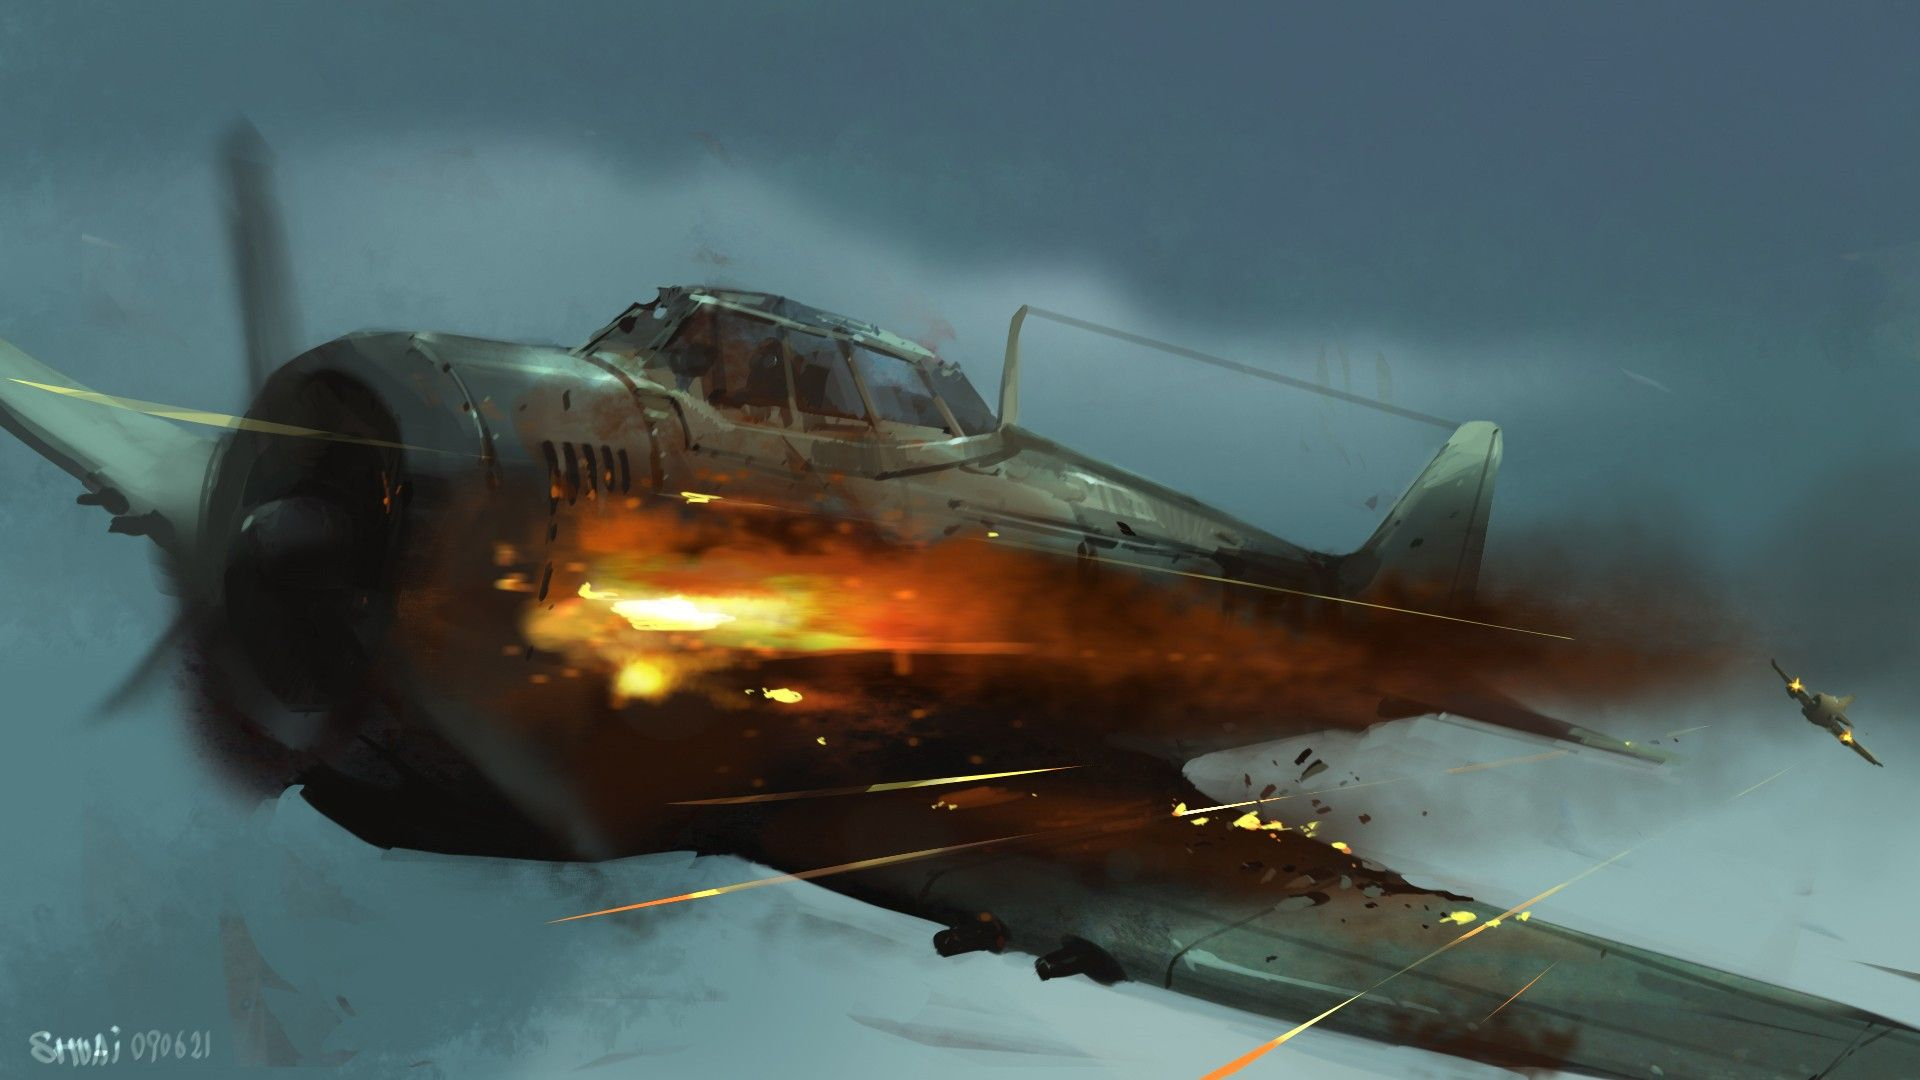 Airplane Plane WWII World War Drawing Battle Military Wallpaper